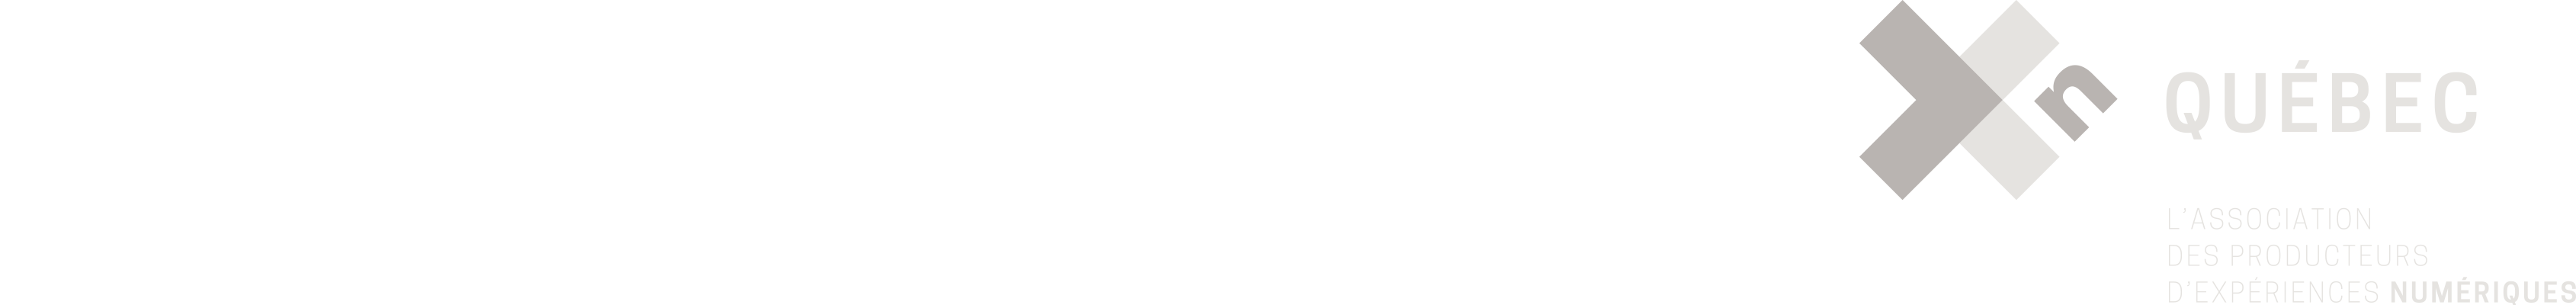 the Quebec Film and Television Council (QFTC), La Guilde du jeu vidéo du Québec and Xn Québec.